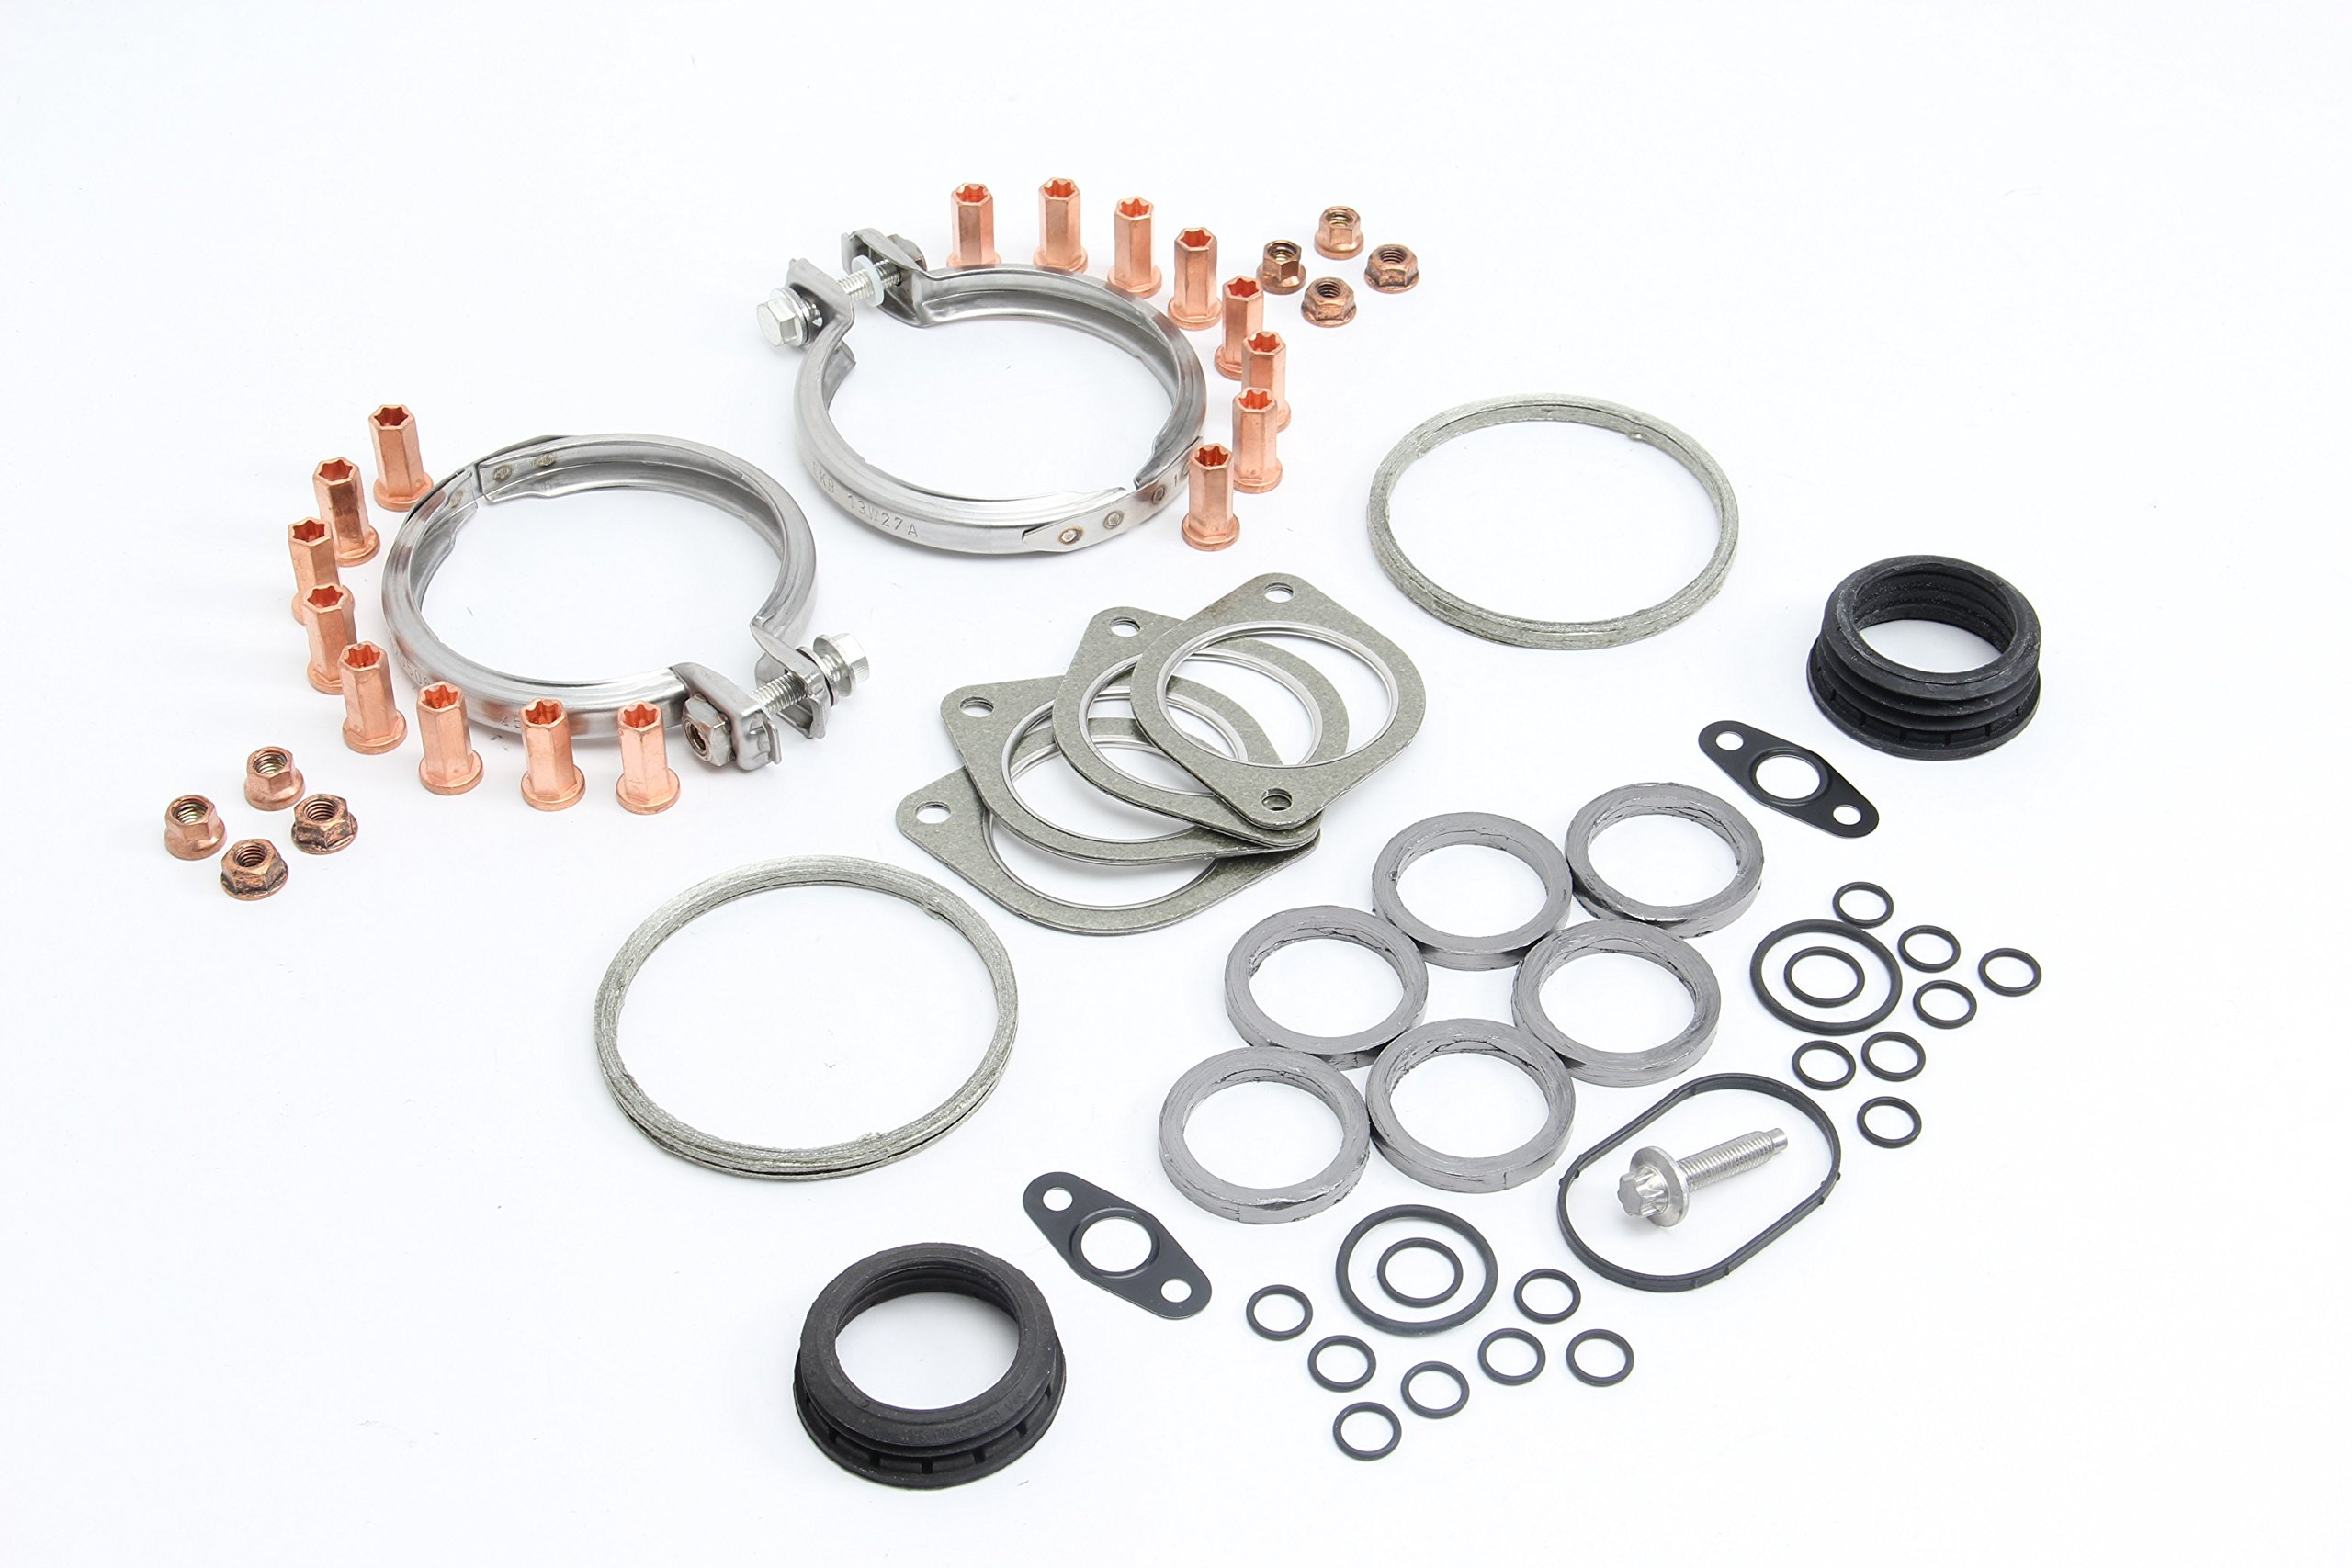 Dinan D313-0010 N54 Turbo Installation Hardware Kit for BMW 135/335/1M/Z4